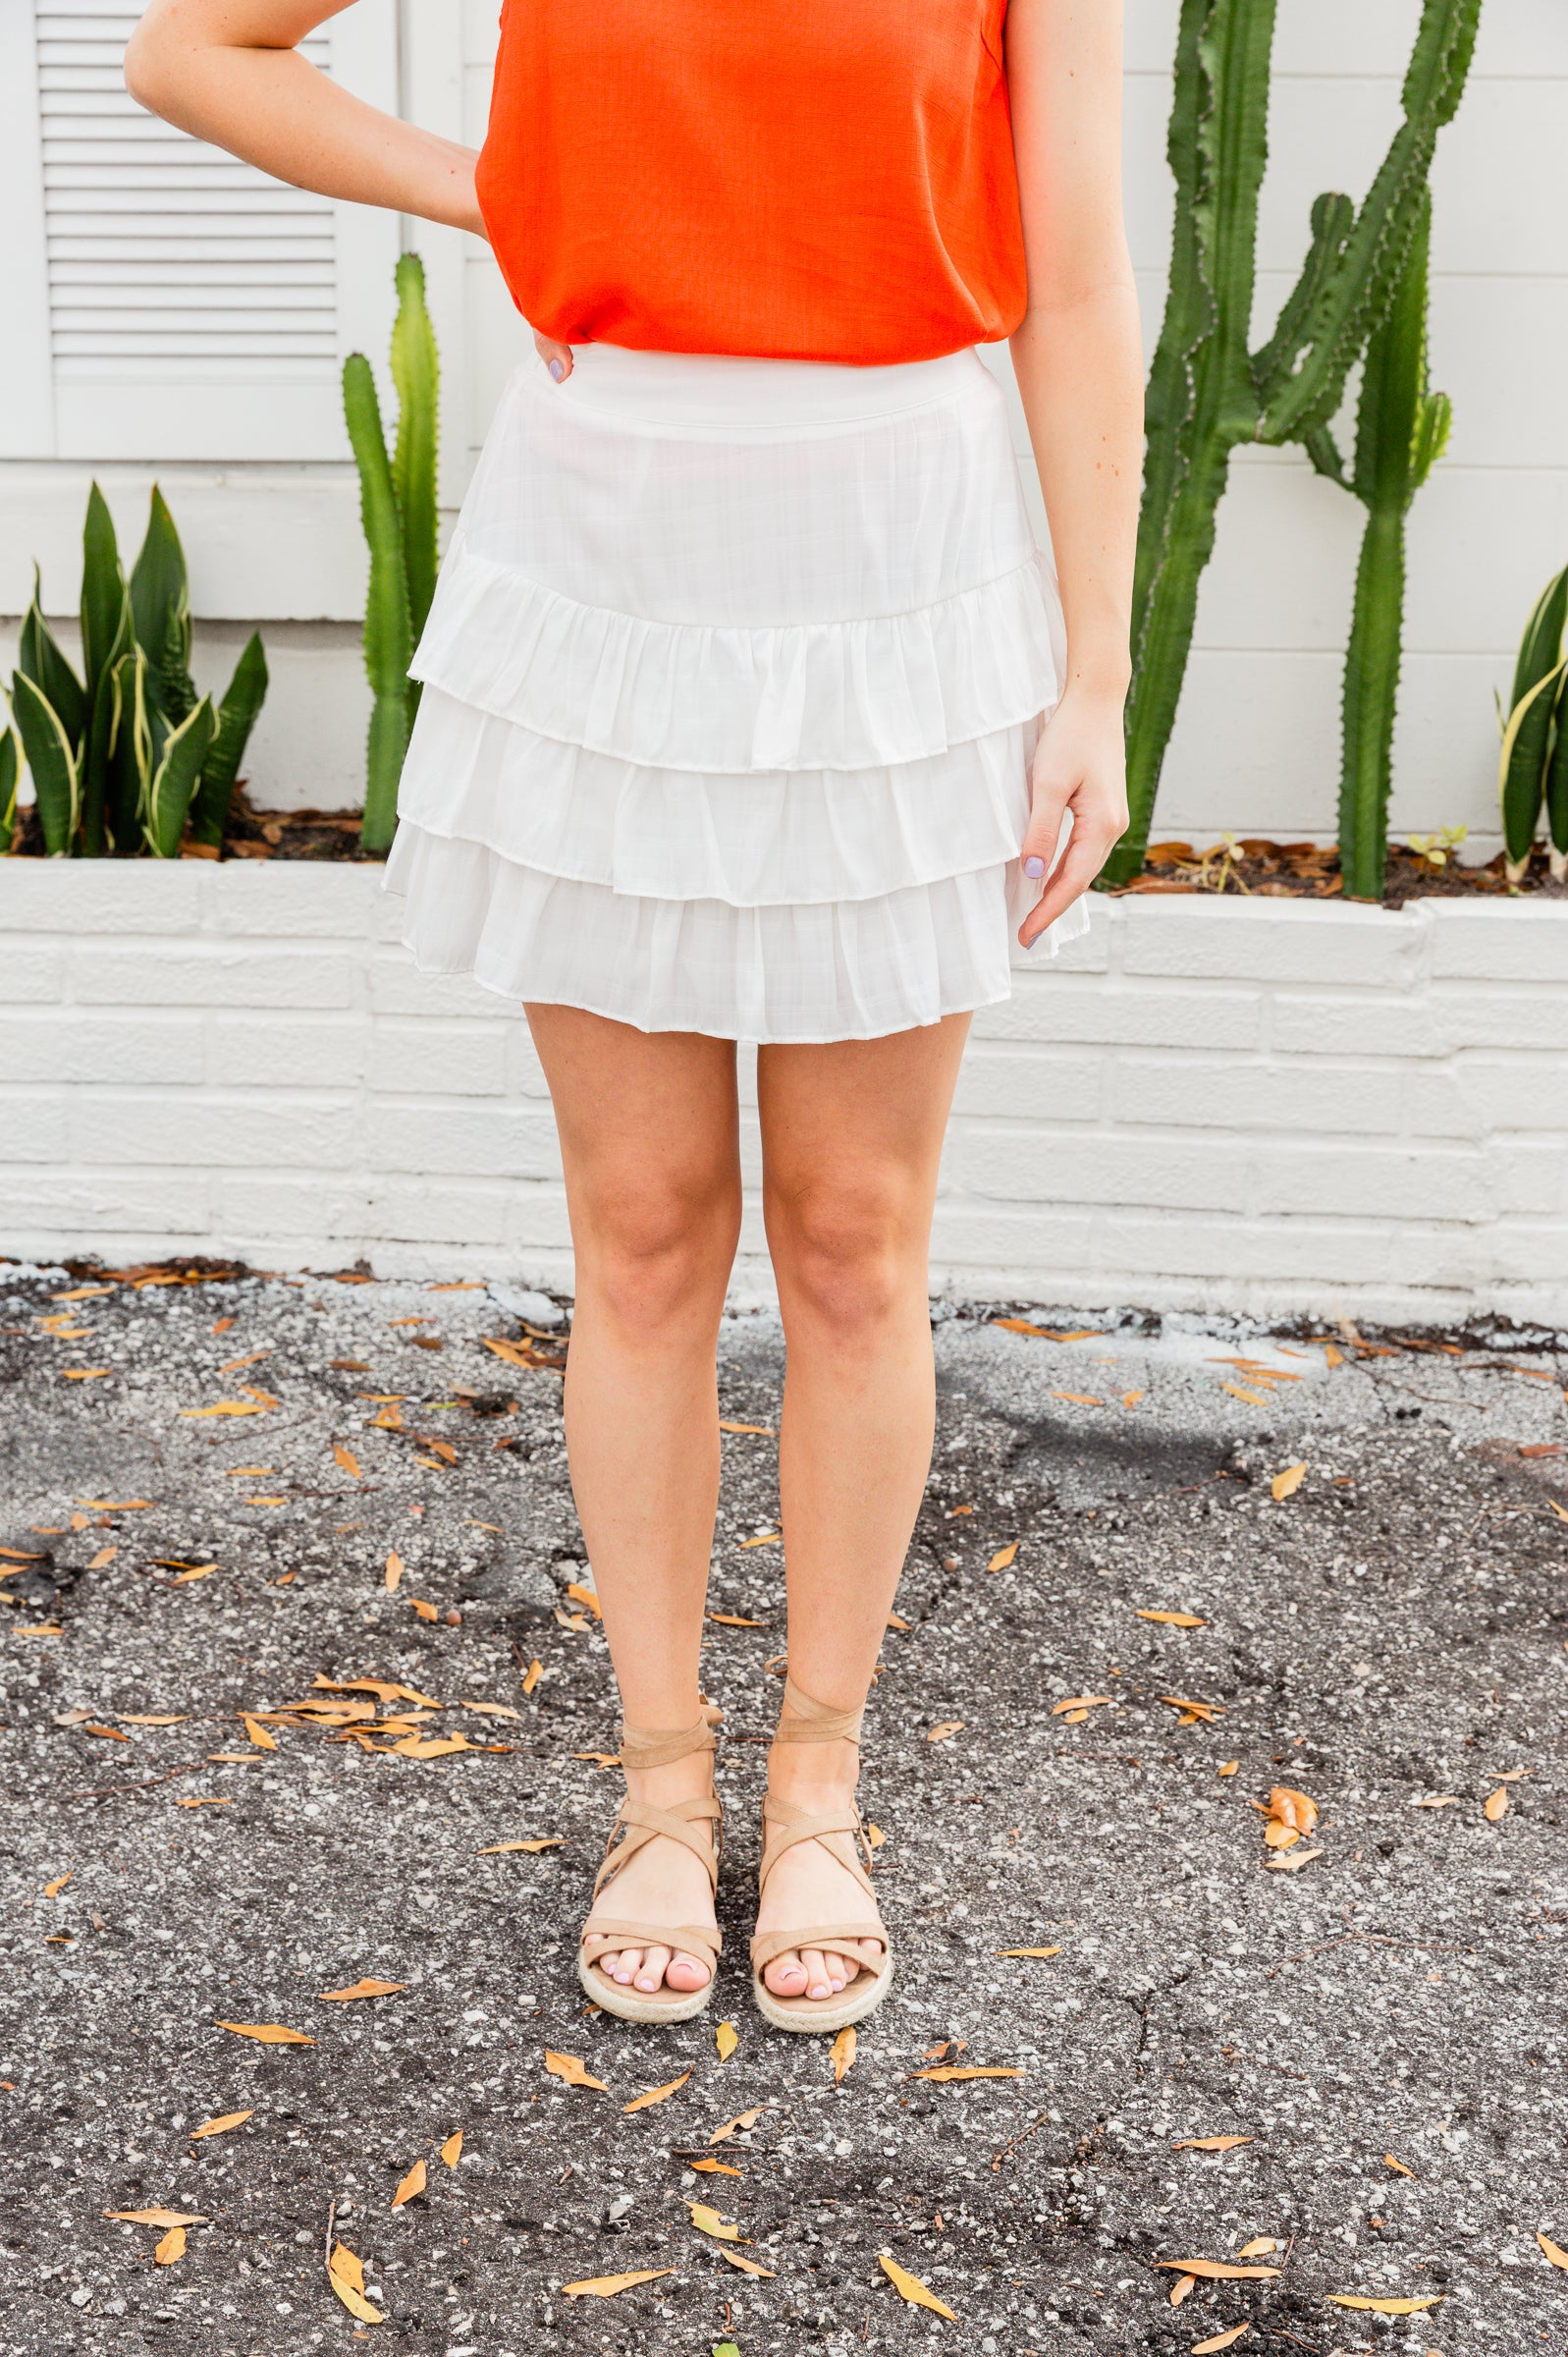 This breezy mini skirt has an elastic waistband that goes down into a layered ruffle skirt. Style this spring white skirt with a bodysuit.